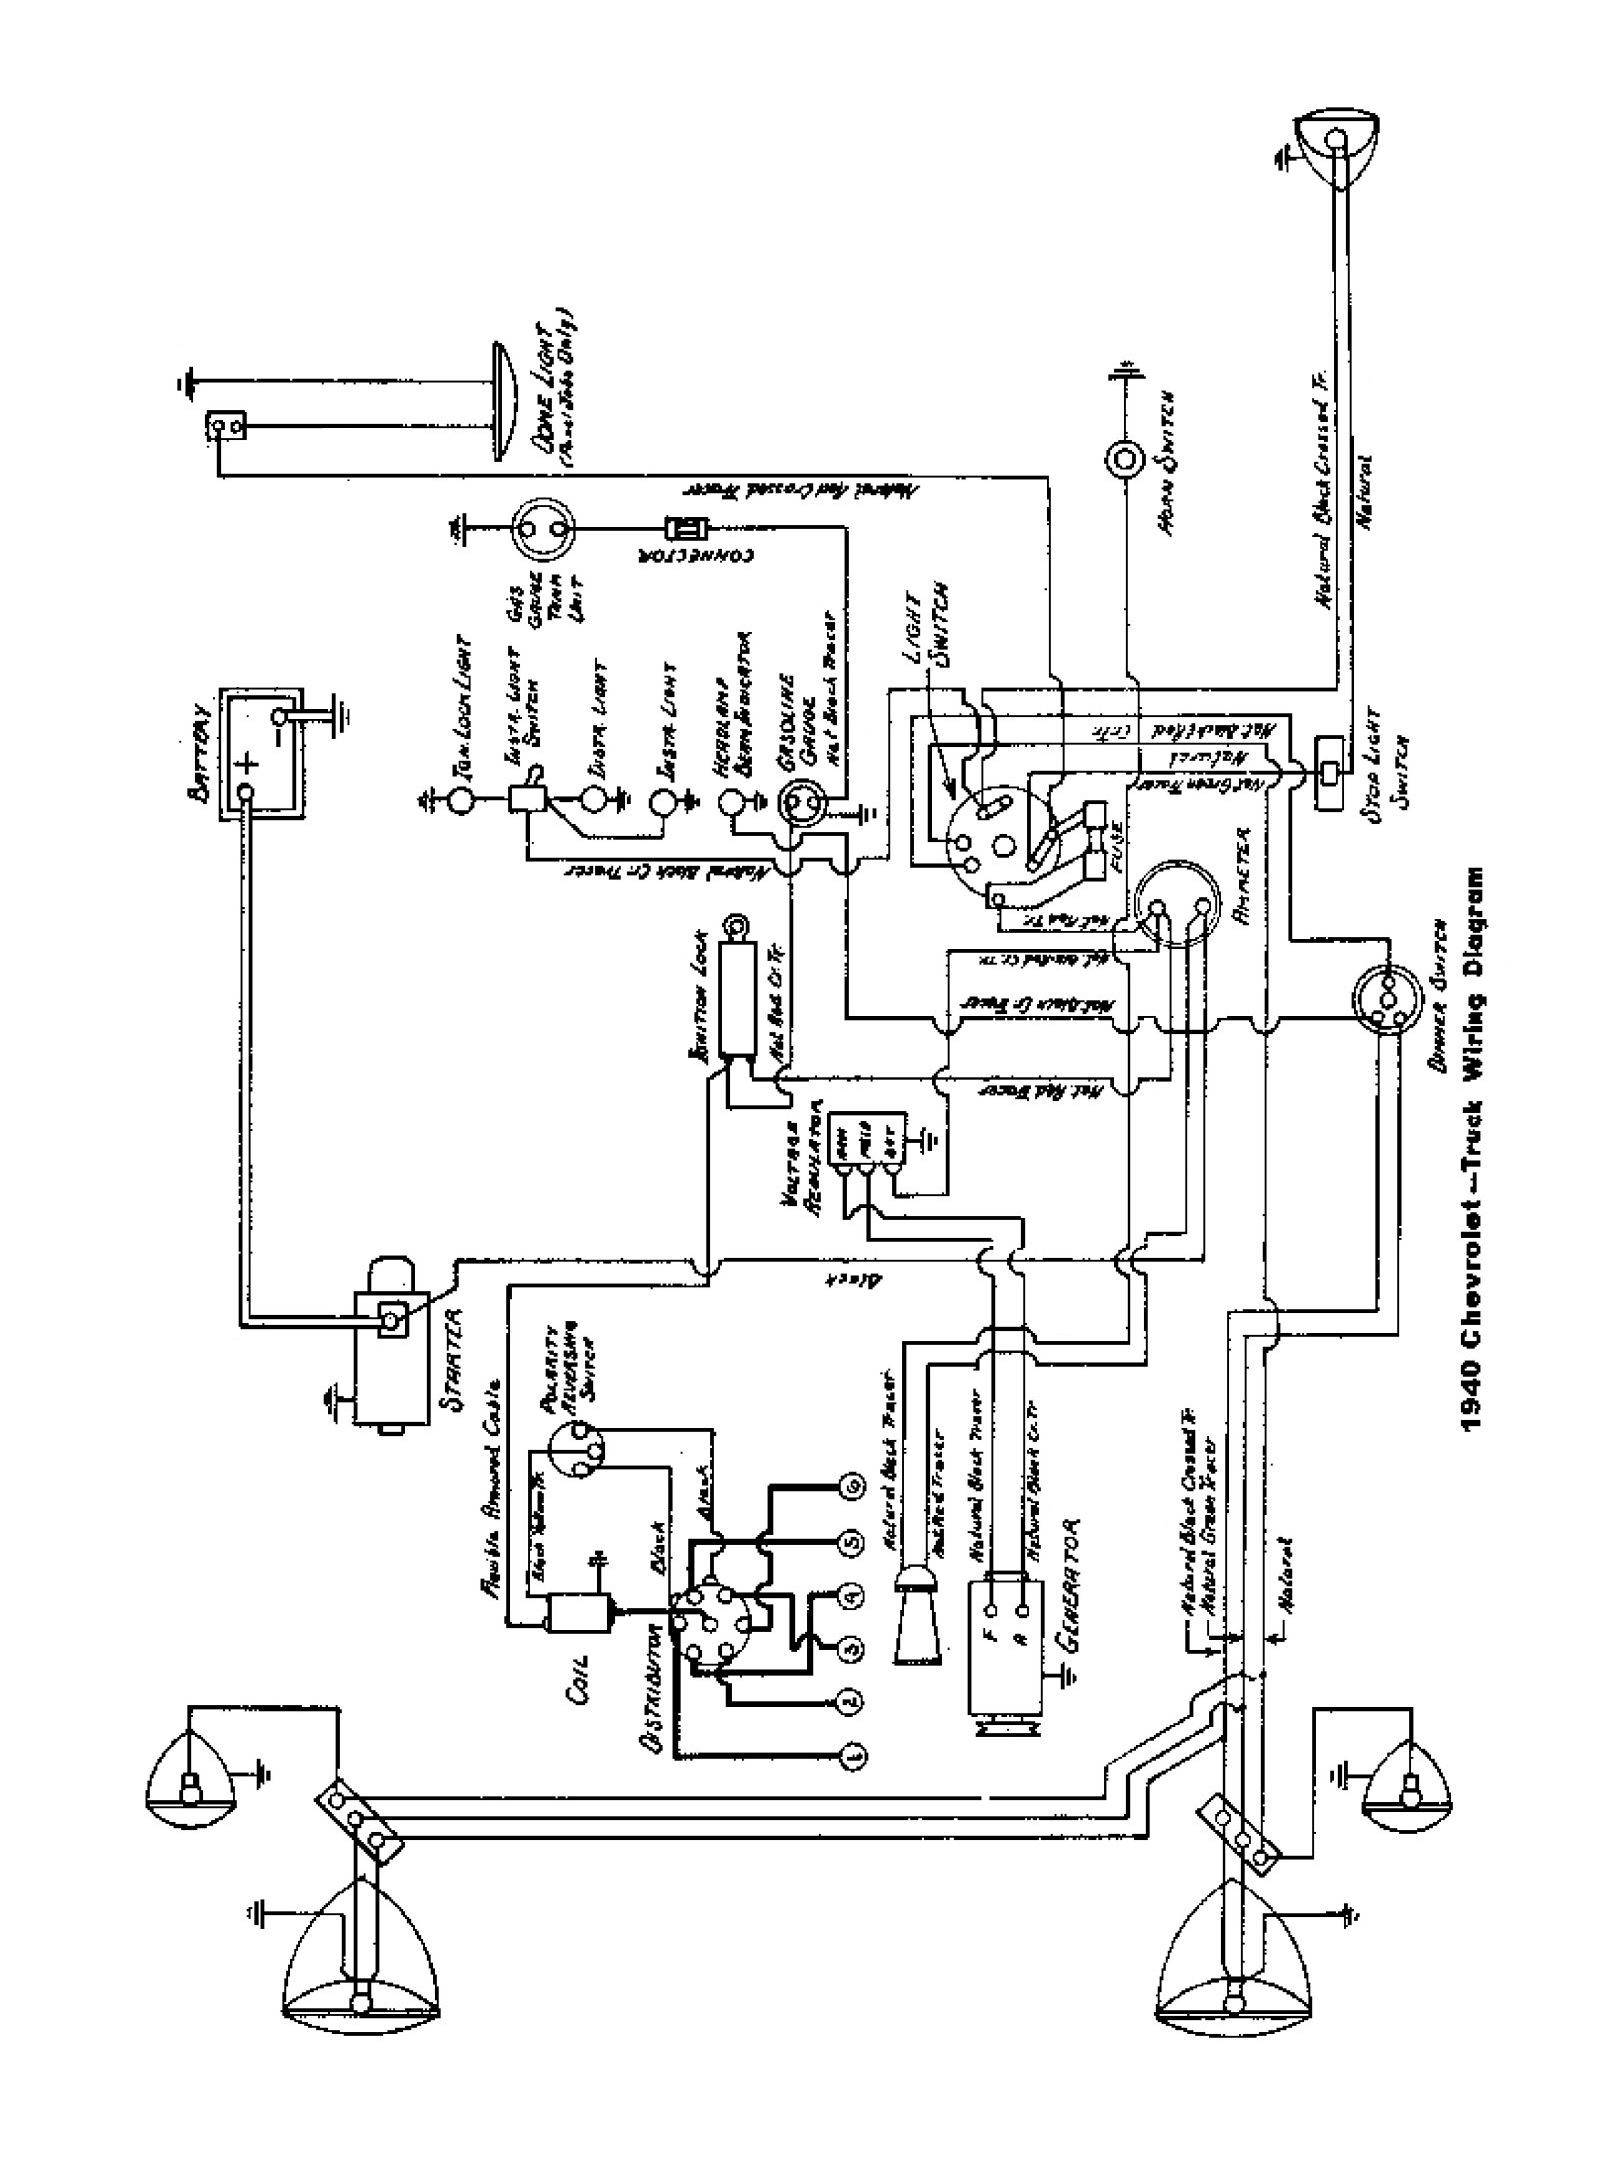 Wiring Diagram For 1949 Chrysler Windsor. . Wiring Diagram